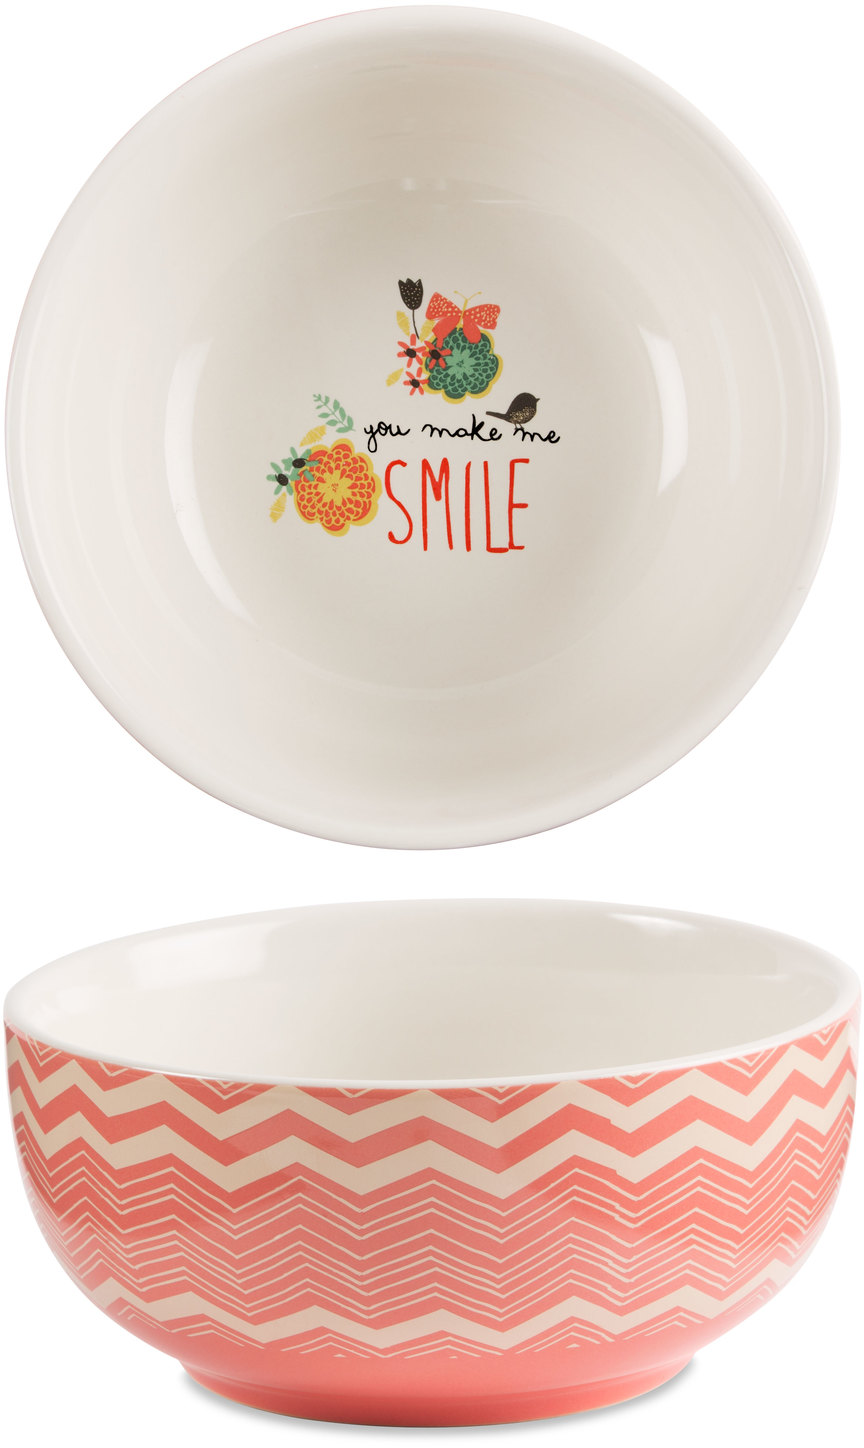 "Smile by Bloom by Amylee Weeks - Smile - 2.75""x 6"" Ceramic Bowl"